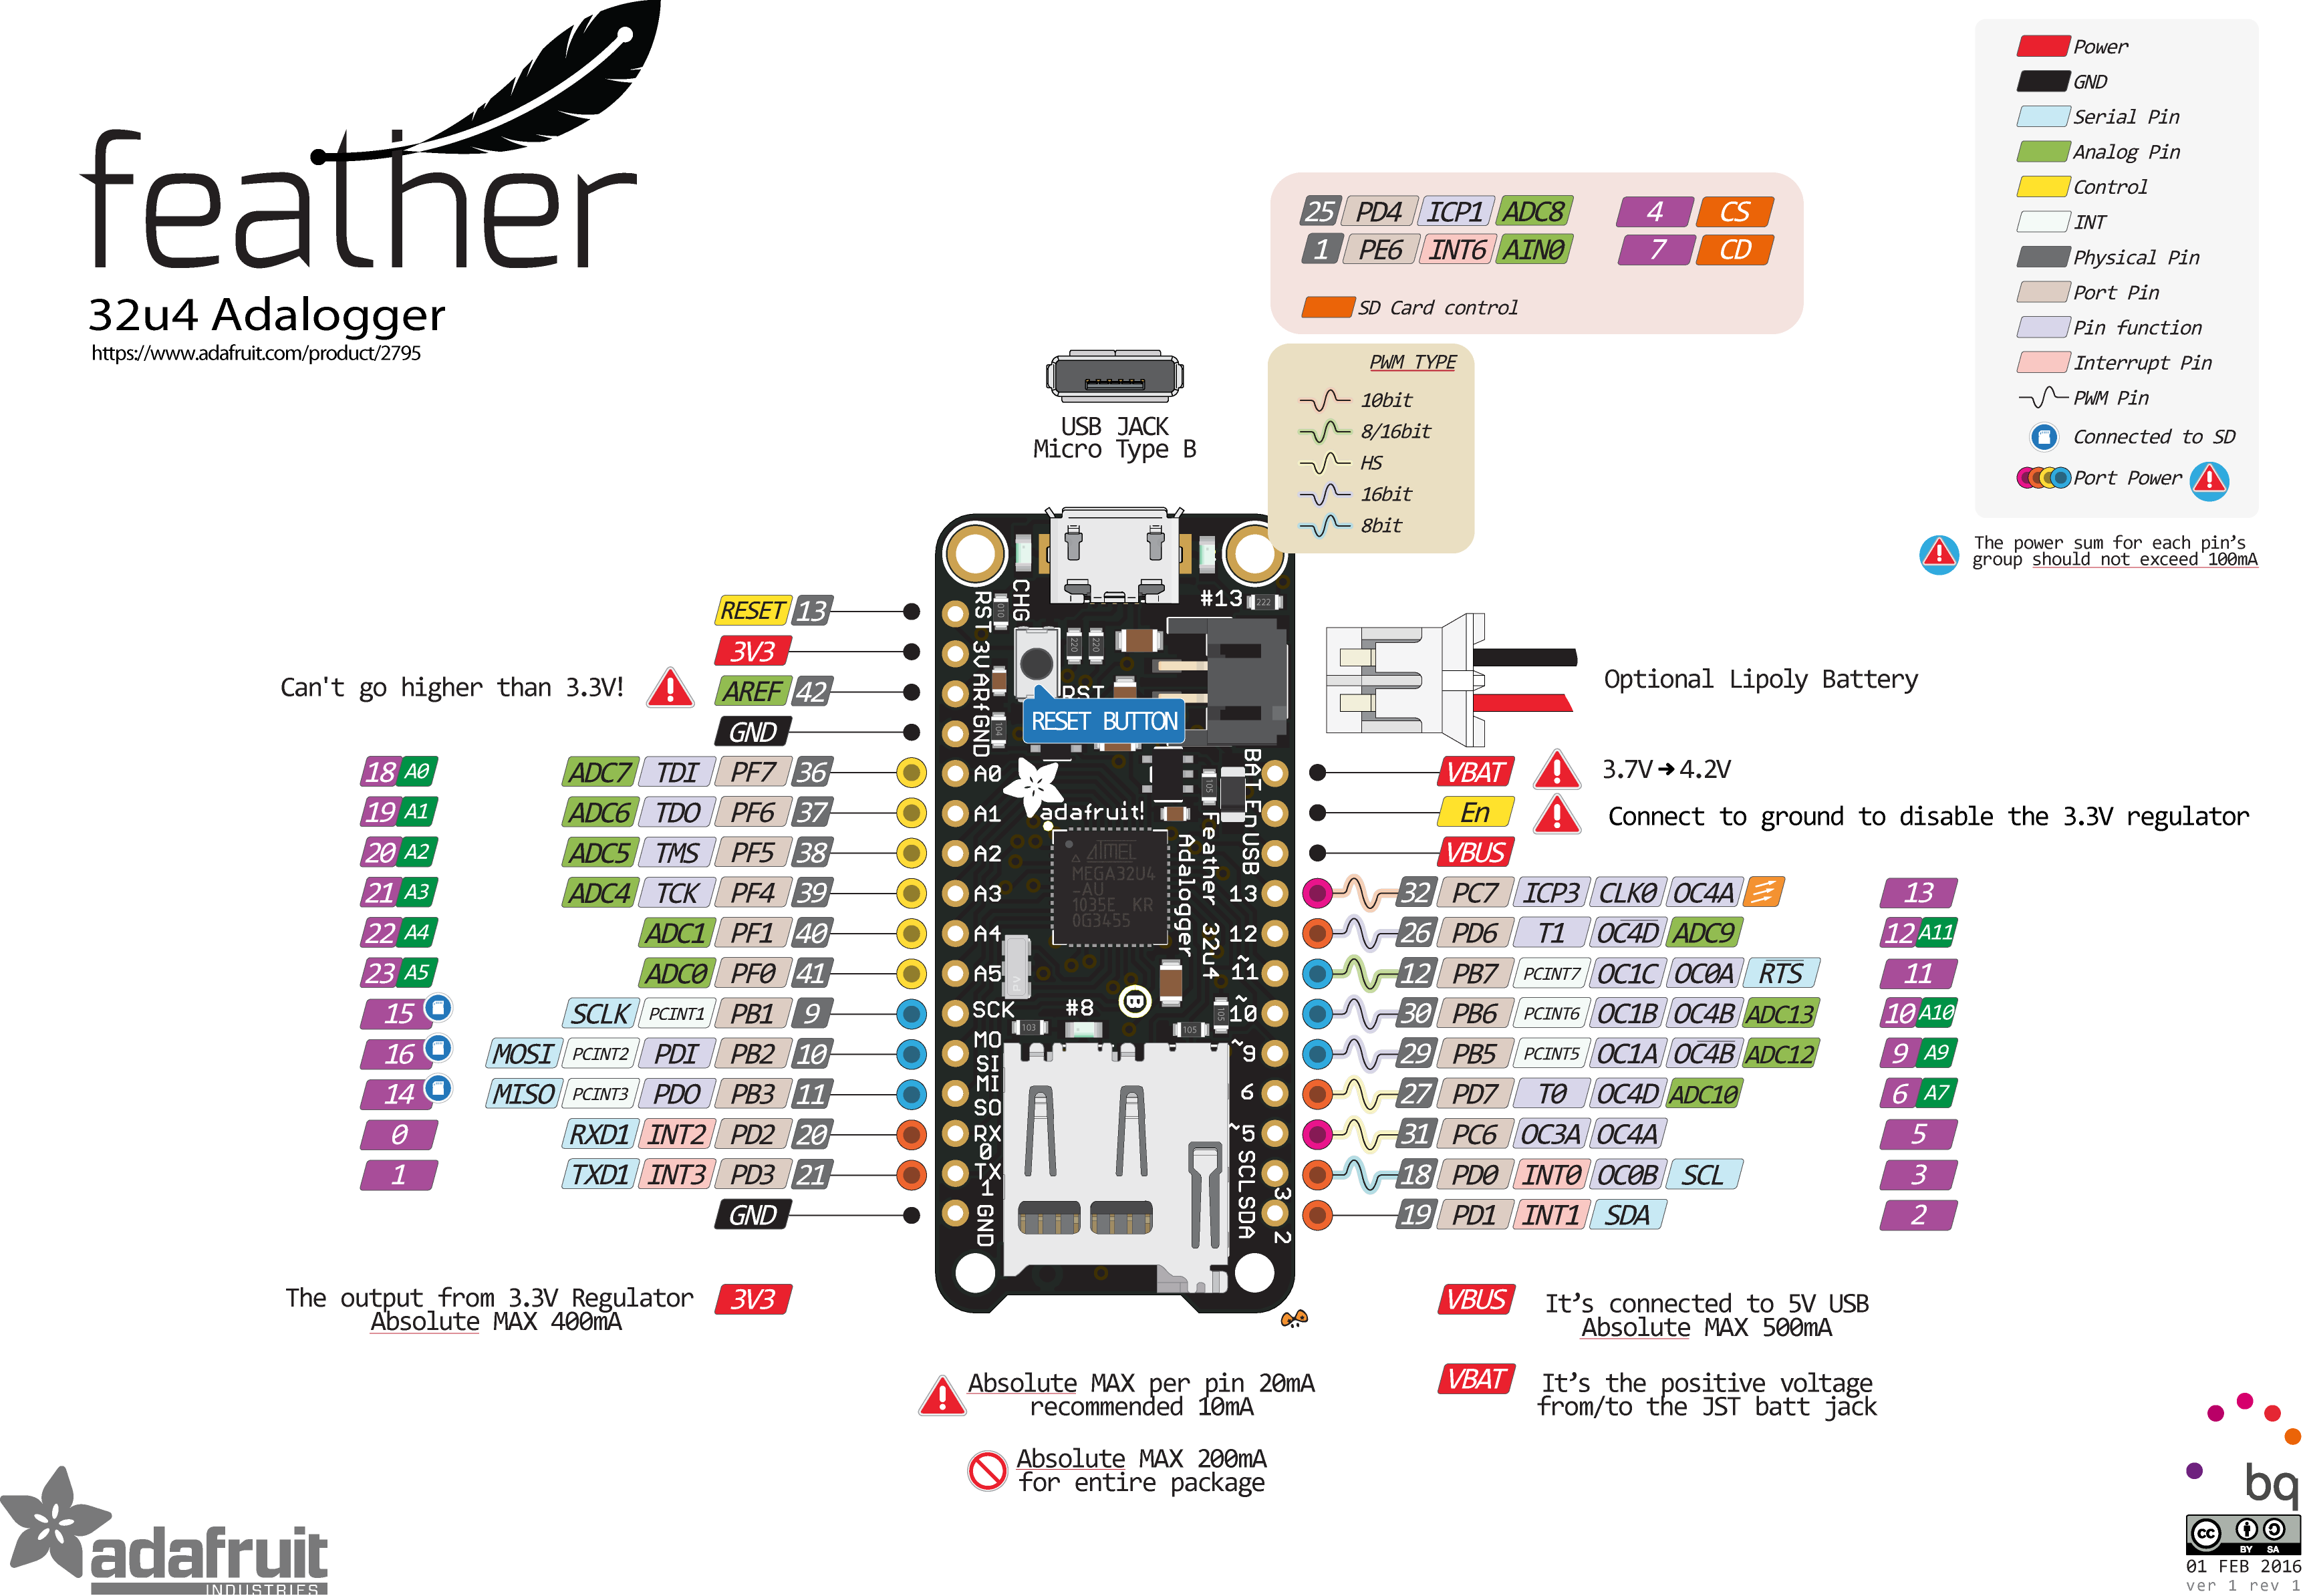 adafruit_products_2795_pinout_v1_0.png